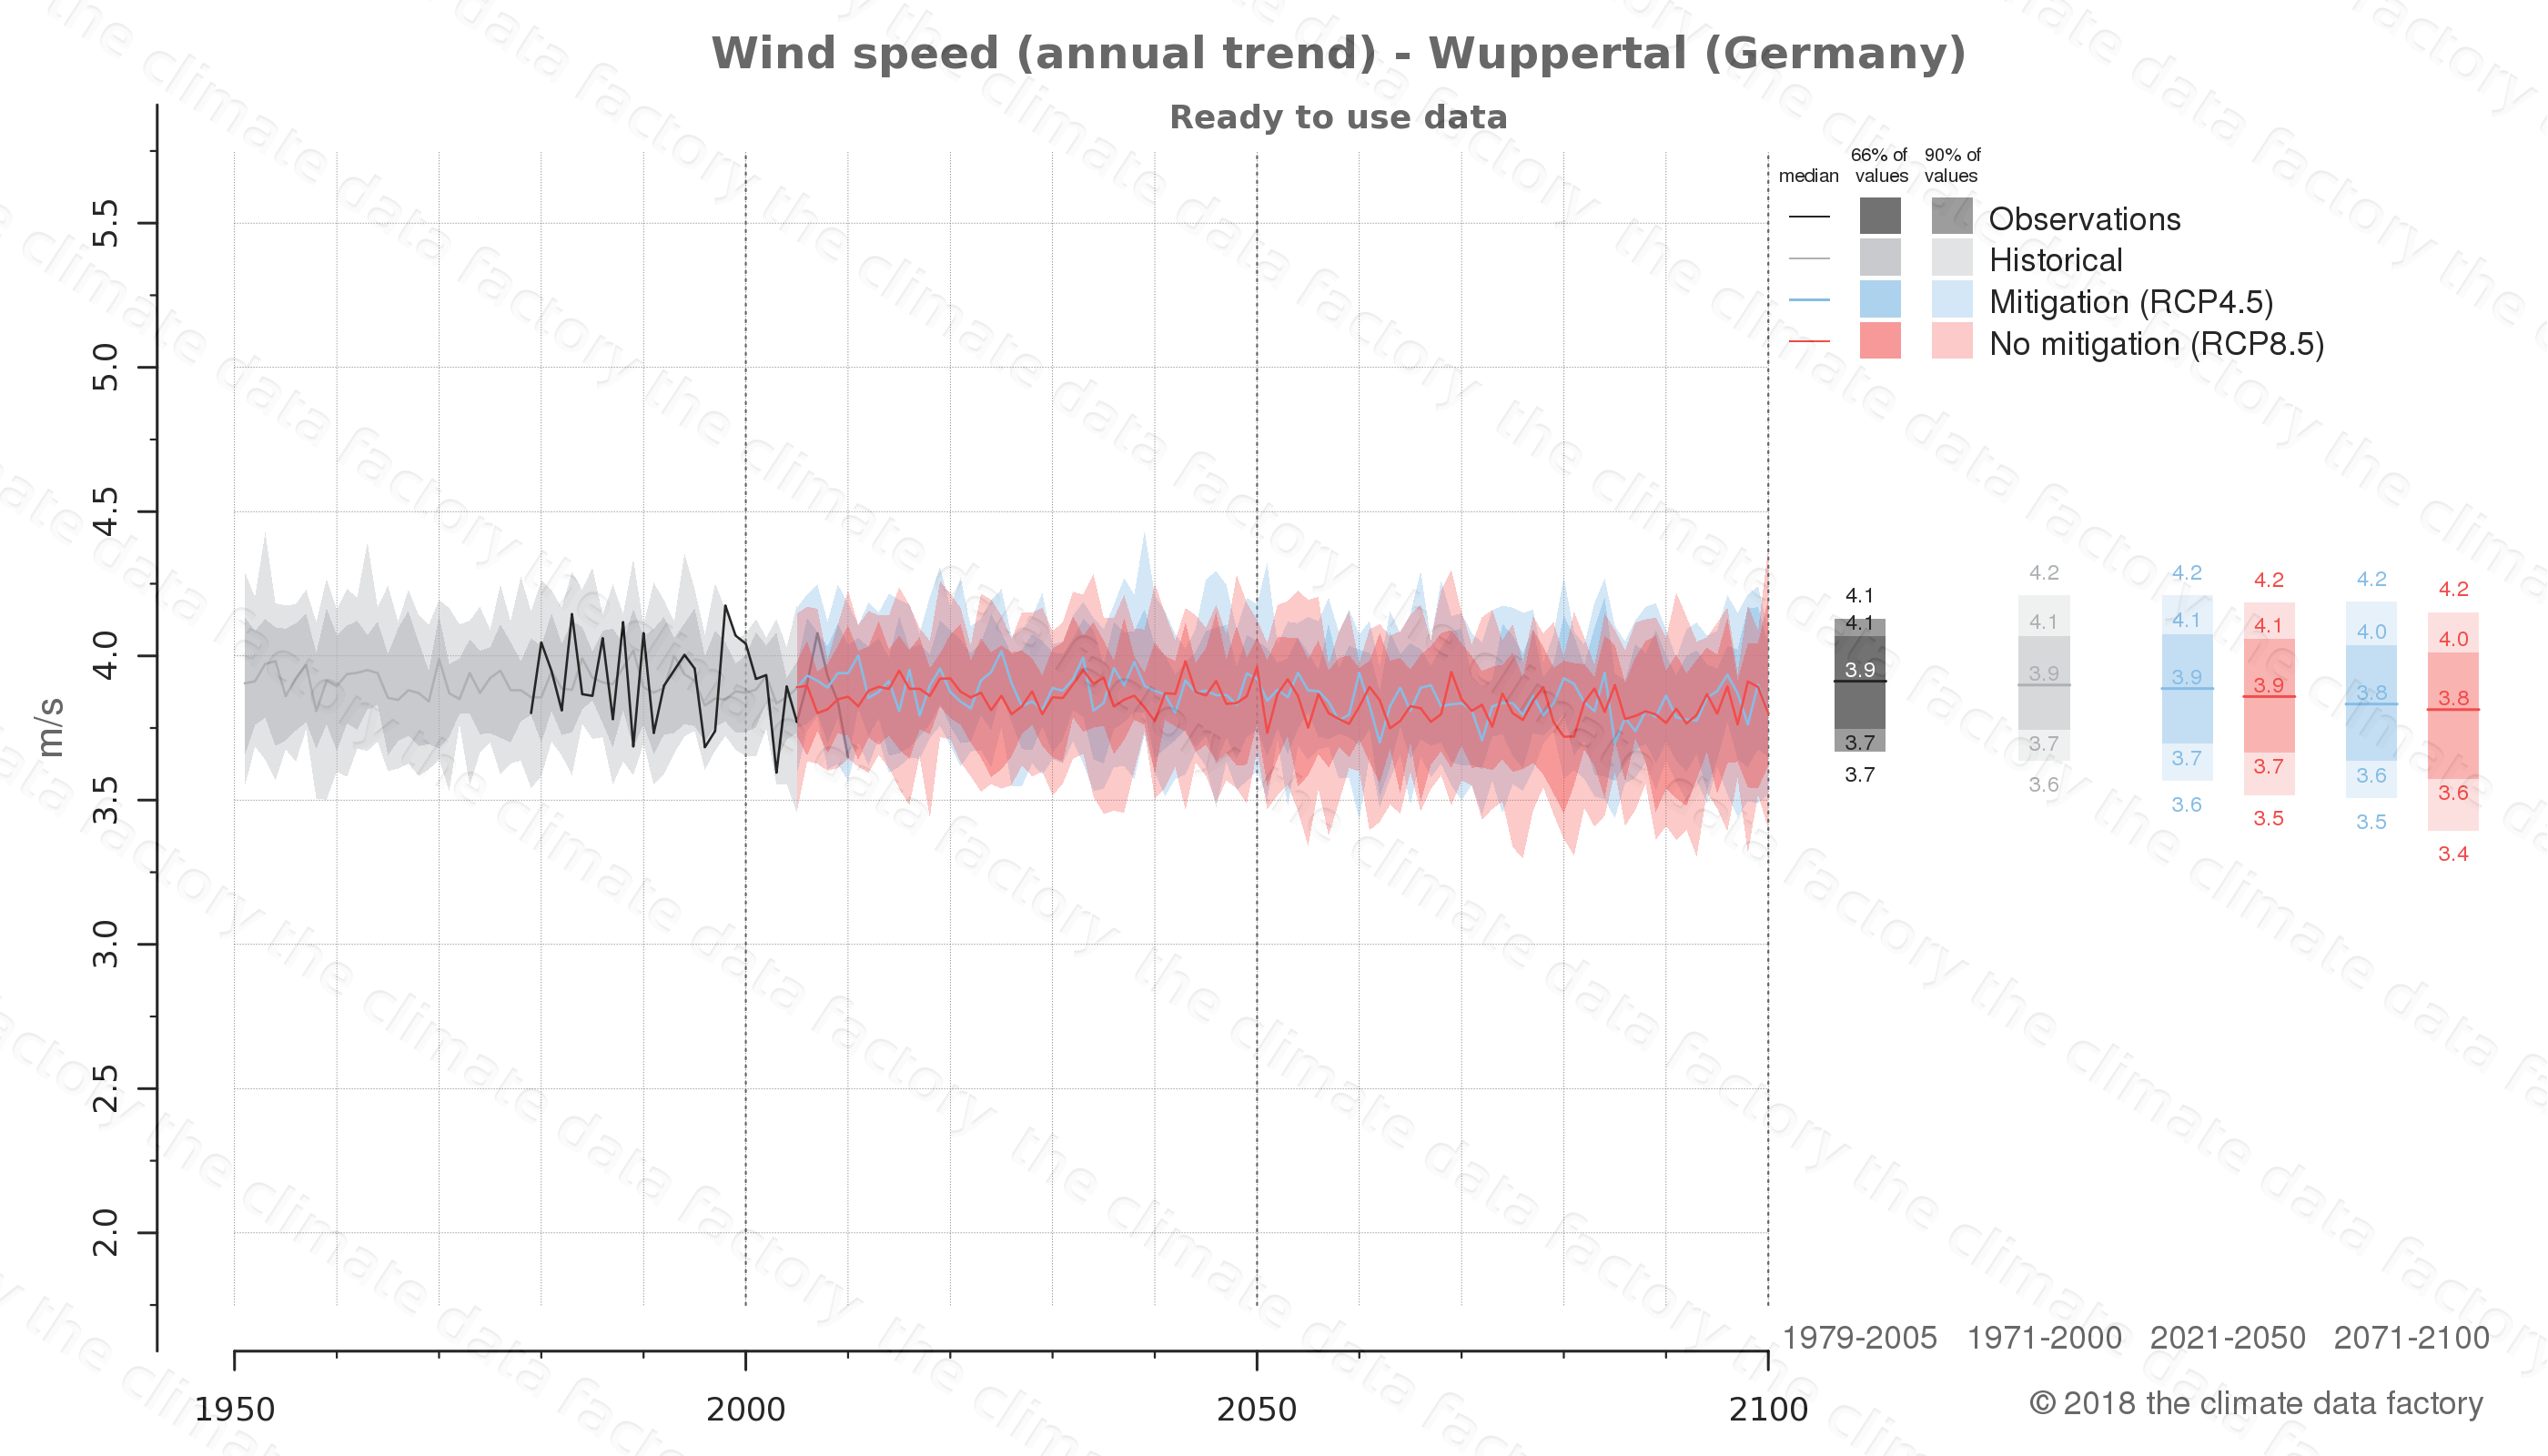 climate change data policy adaptation climate graph city data wind-speed wuppertal germany